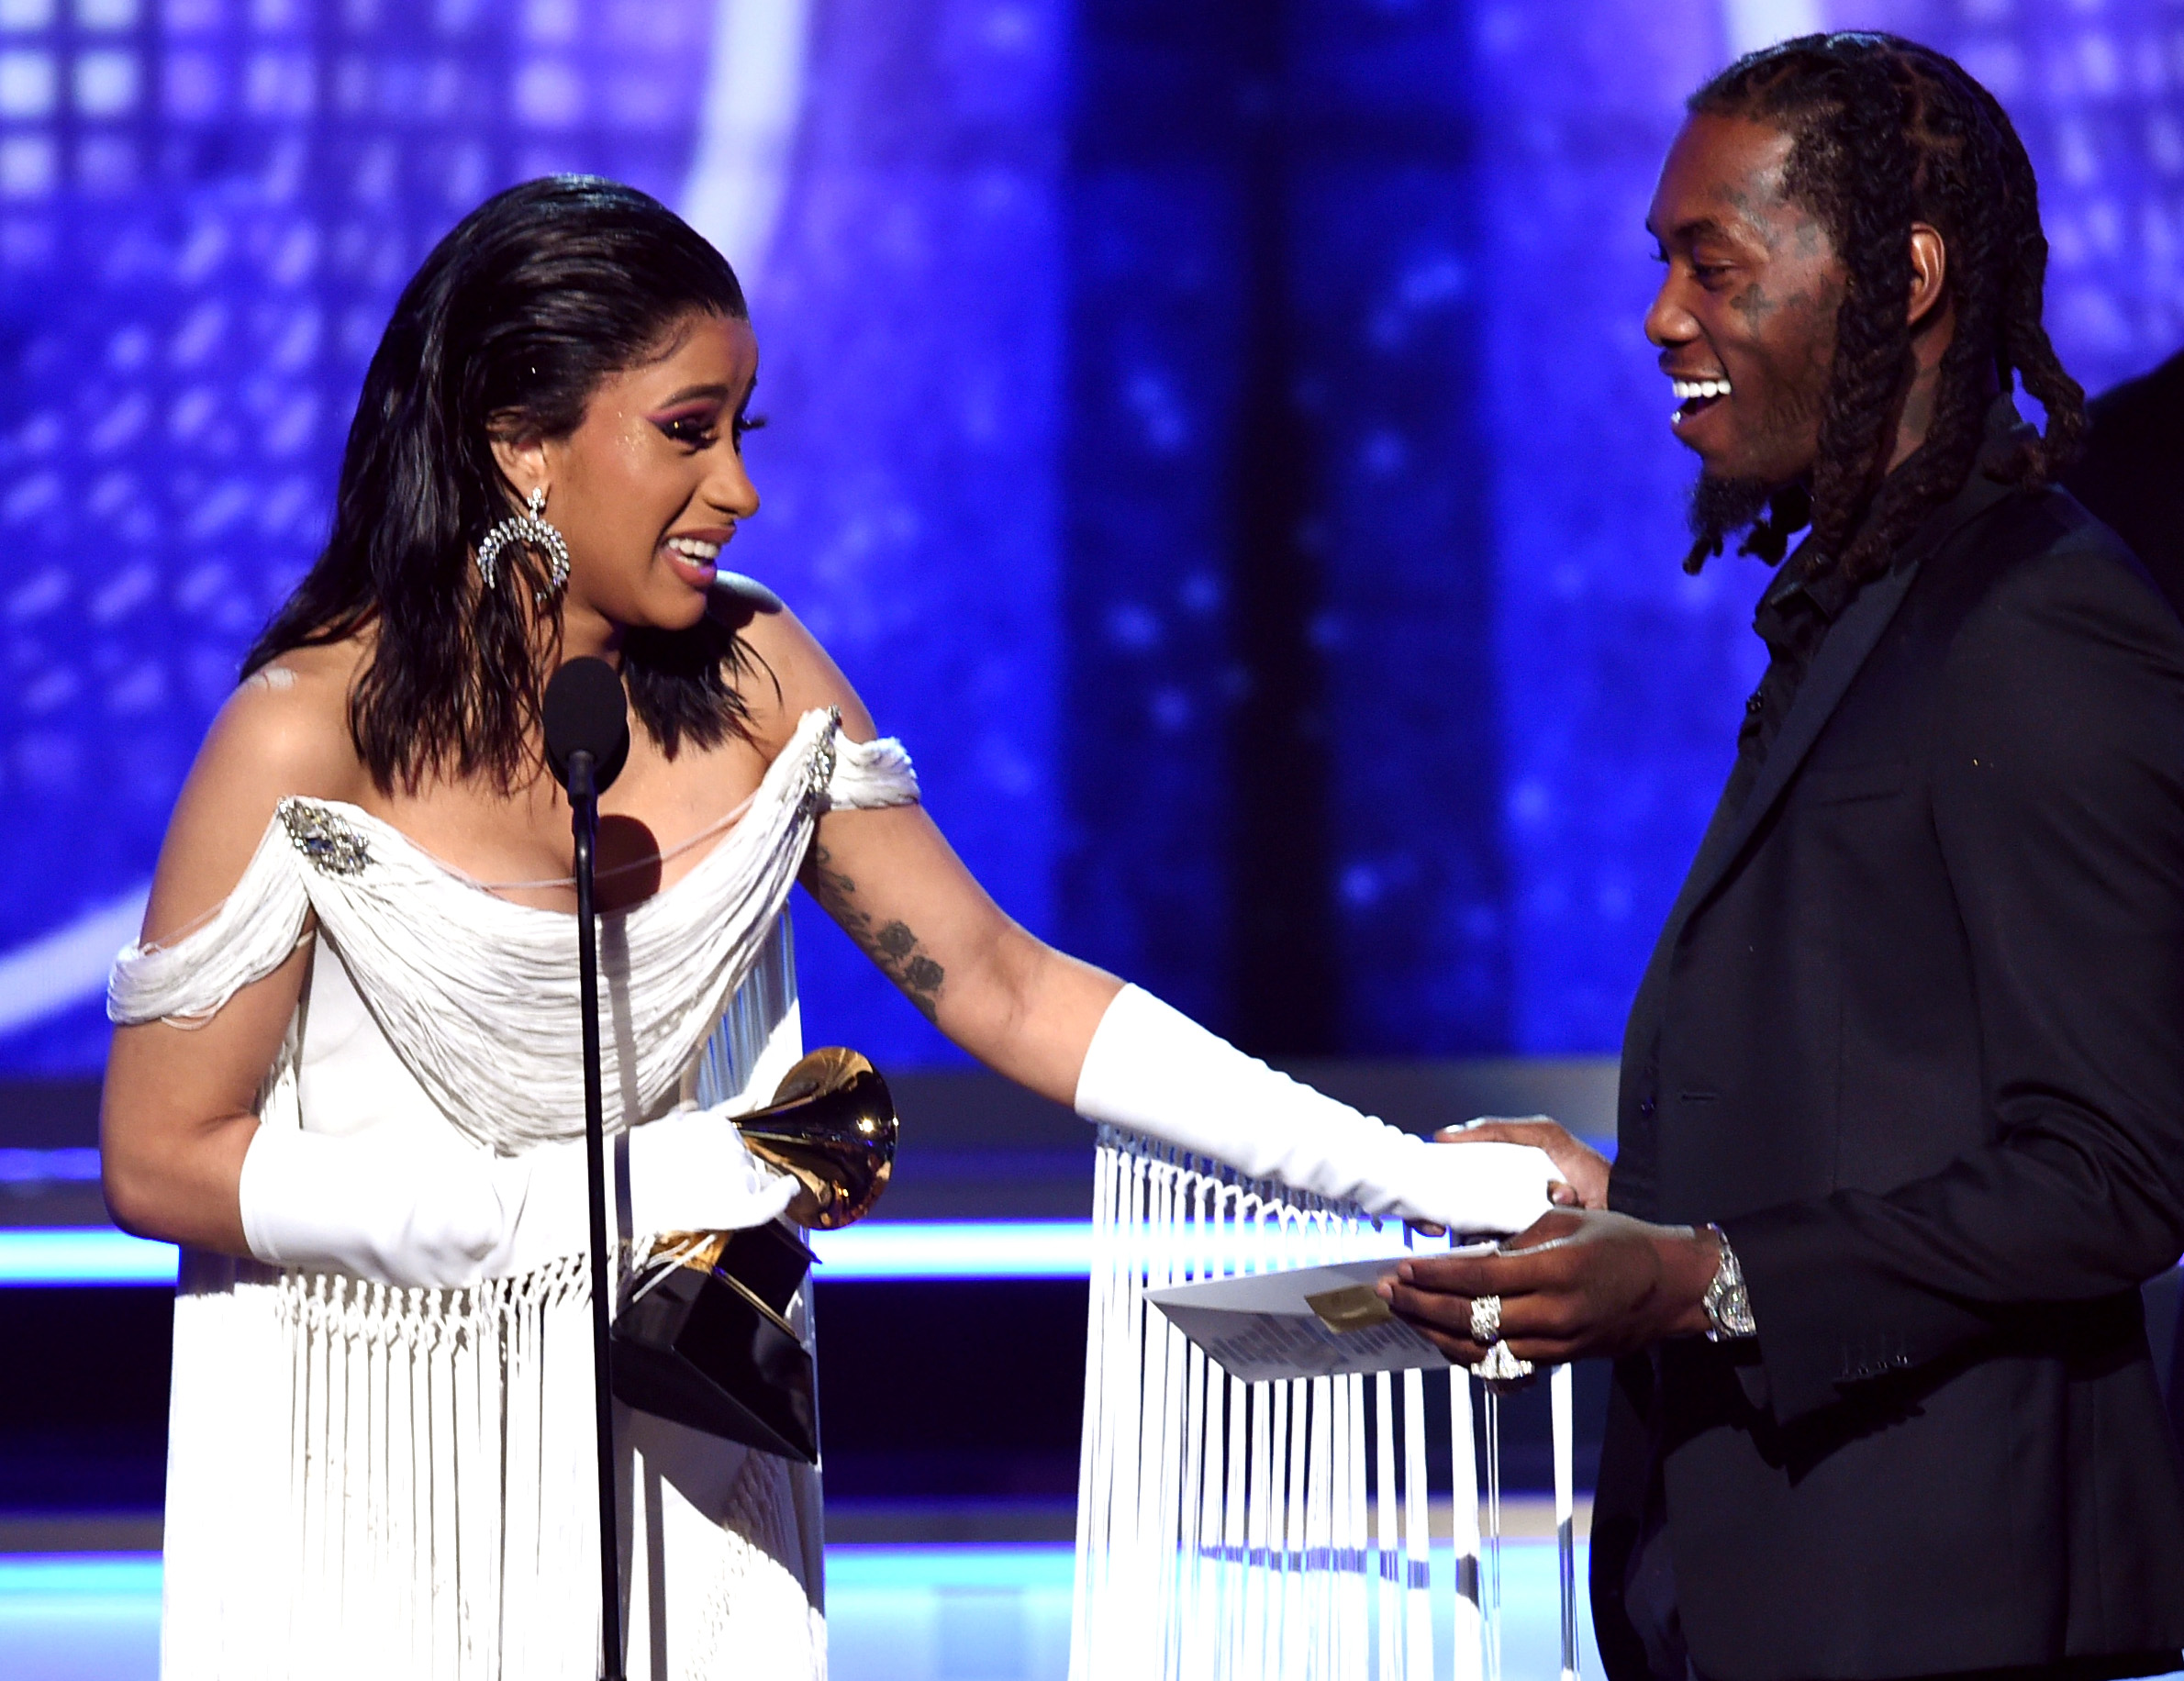 Cardi B And Offset Confound Expectations On Two New Songs